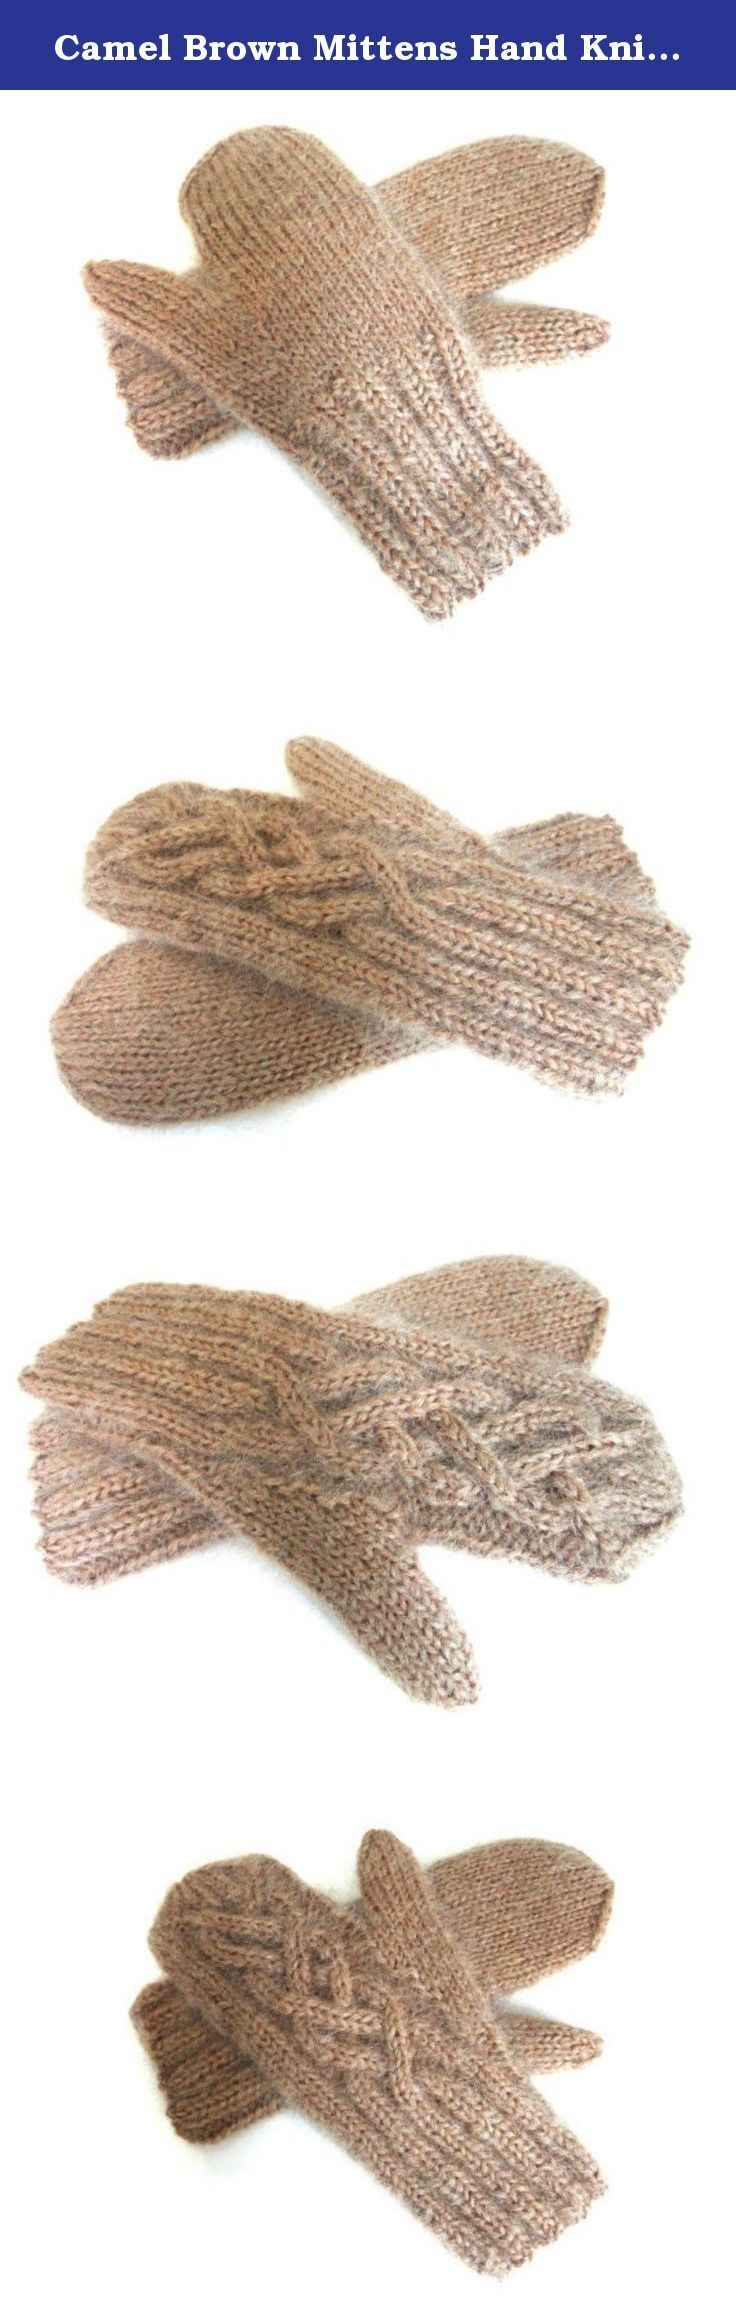 Camel Brown Mittens Hand Knit Wool and Mohair with Celtic Twist Cable. These hand knit mittens are one size and will fit most women's hands. They measure approximately 7-inches around at the widest part of the hand. From the ribbed cuff to the top, they are approximately 9 1/2-inches. They are knitted and ready to ship.